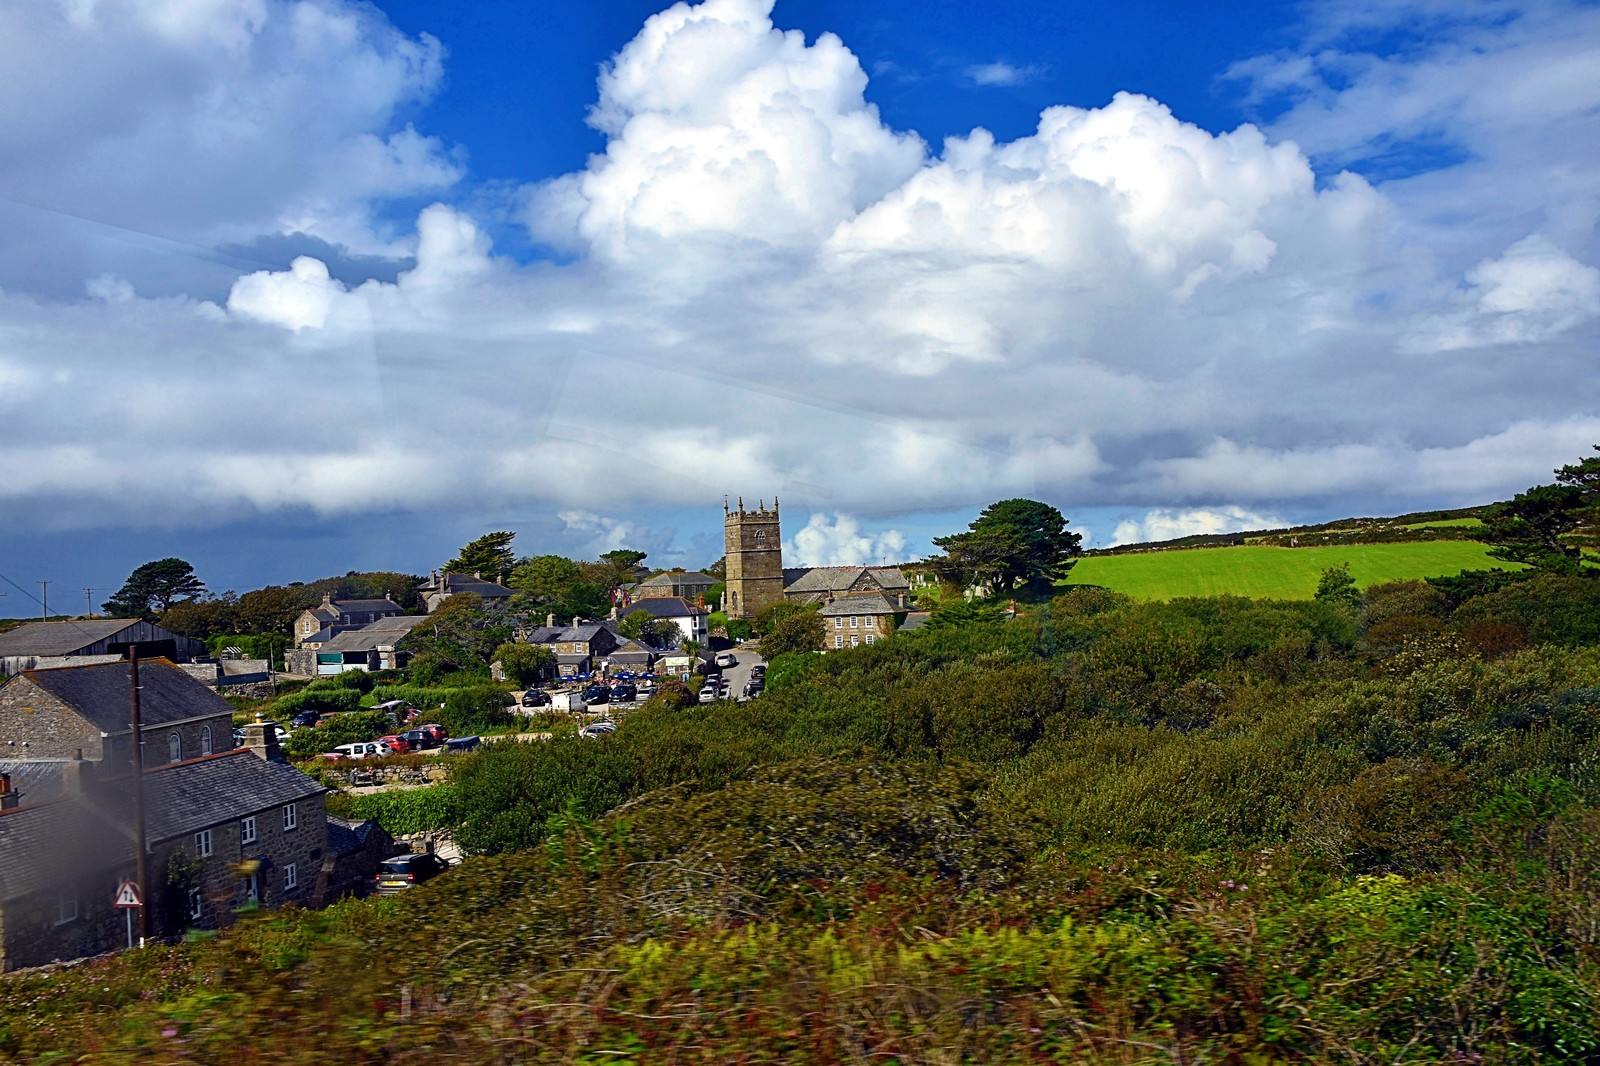 A glimpse of Zennor